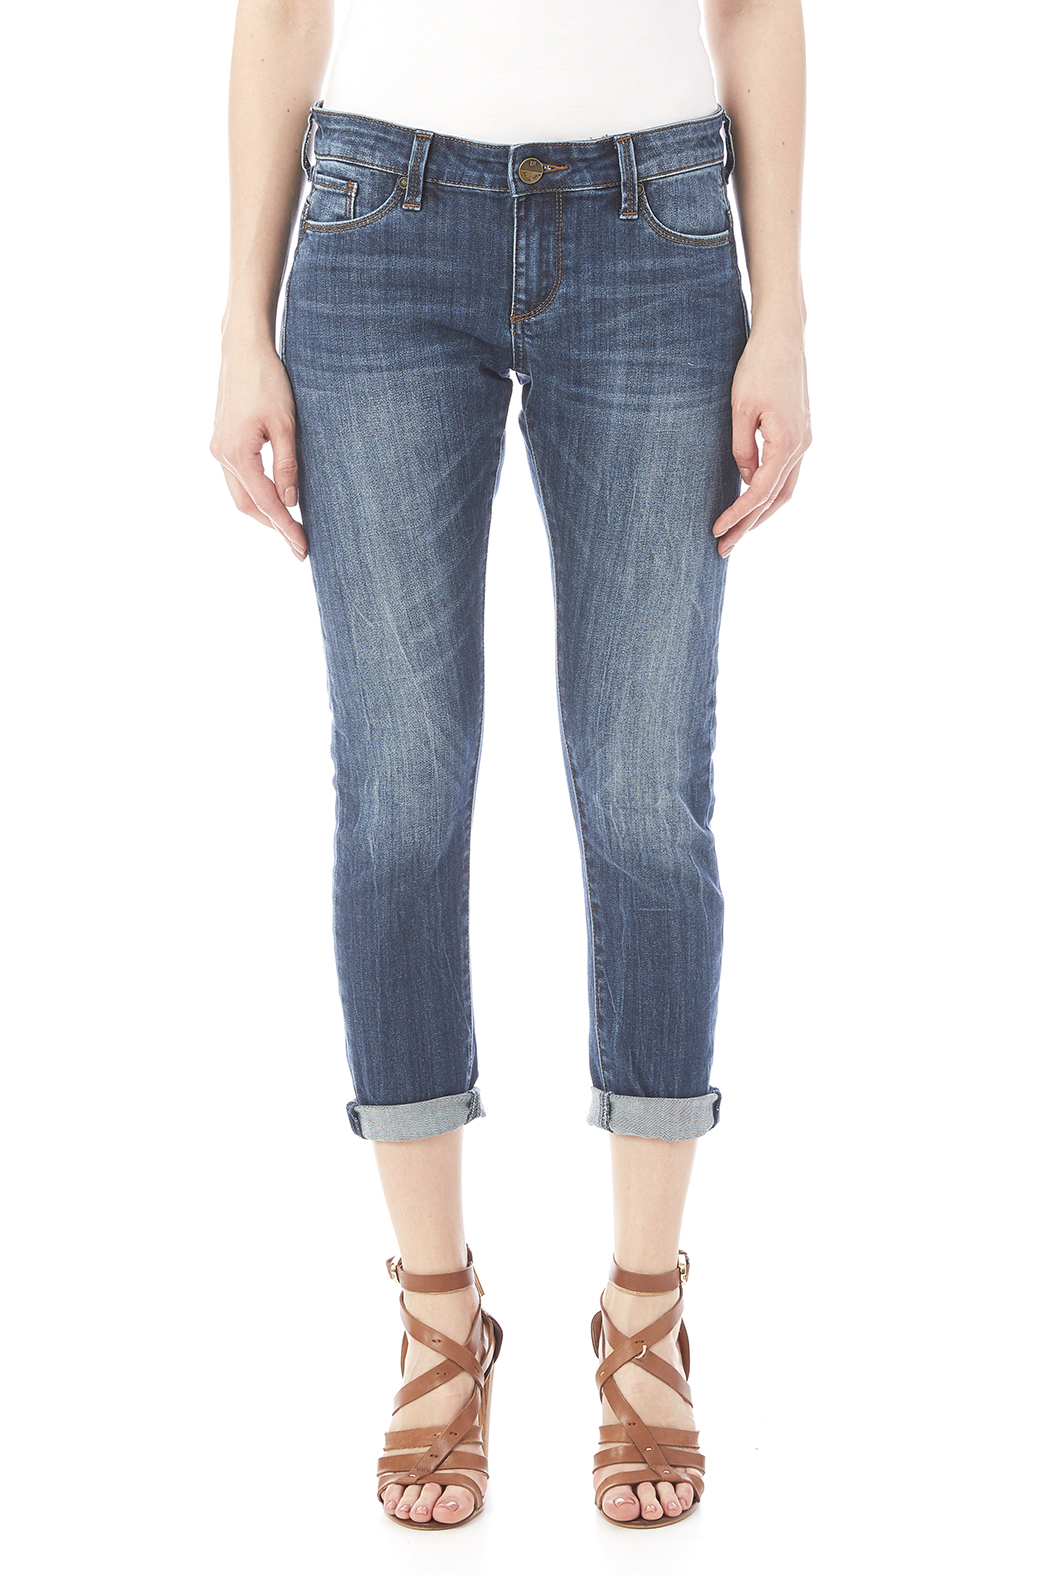 Kut from the Kloth Slim Boyfriend Jean - Side Cropped Image